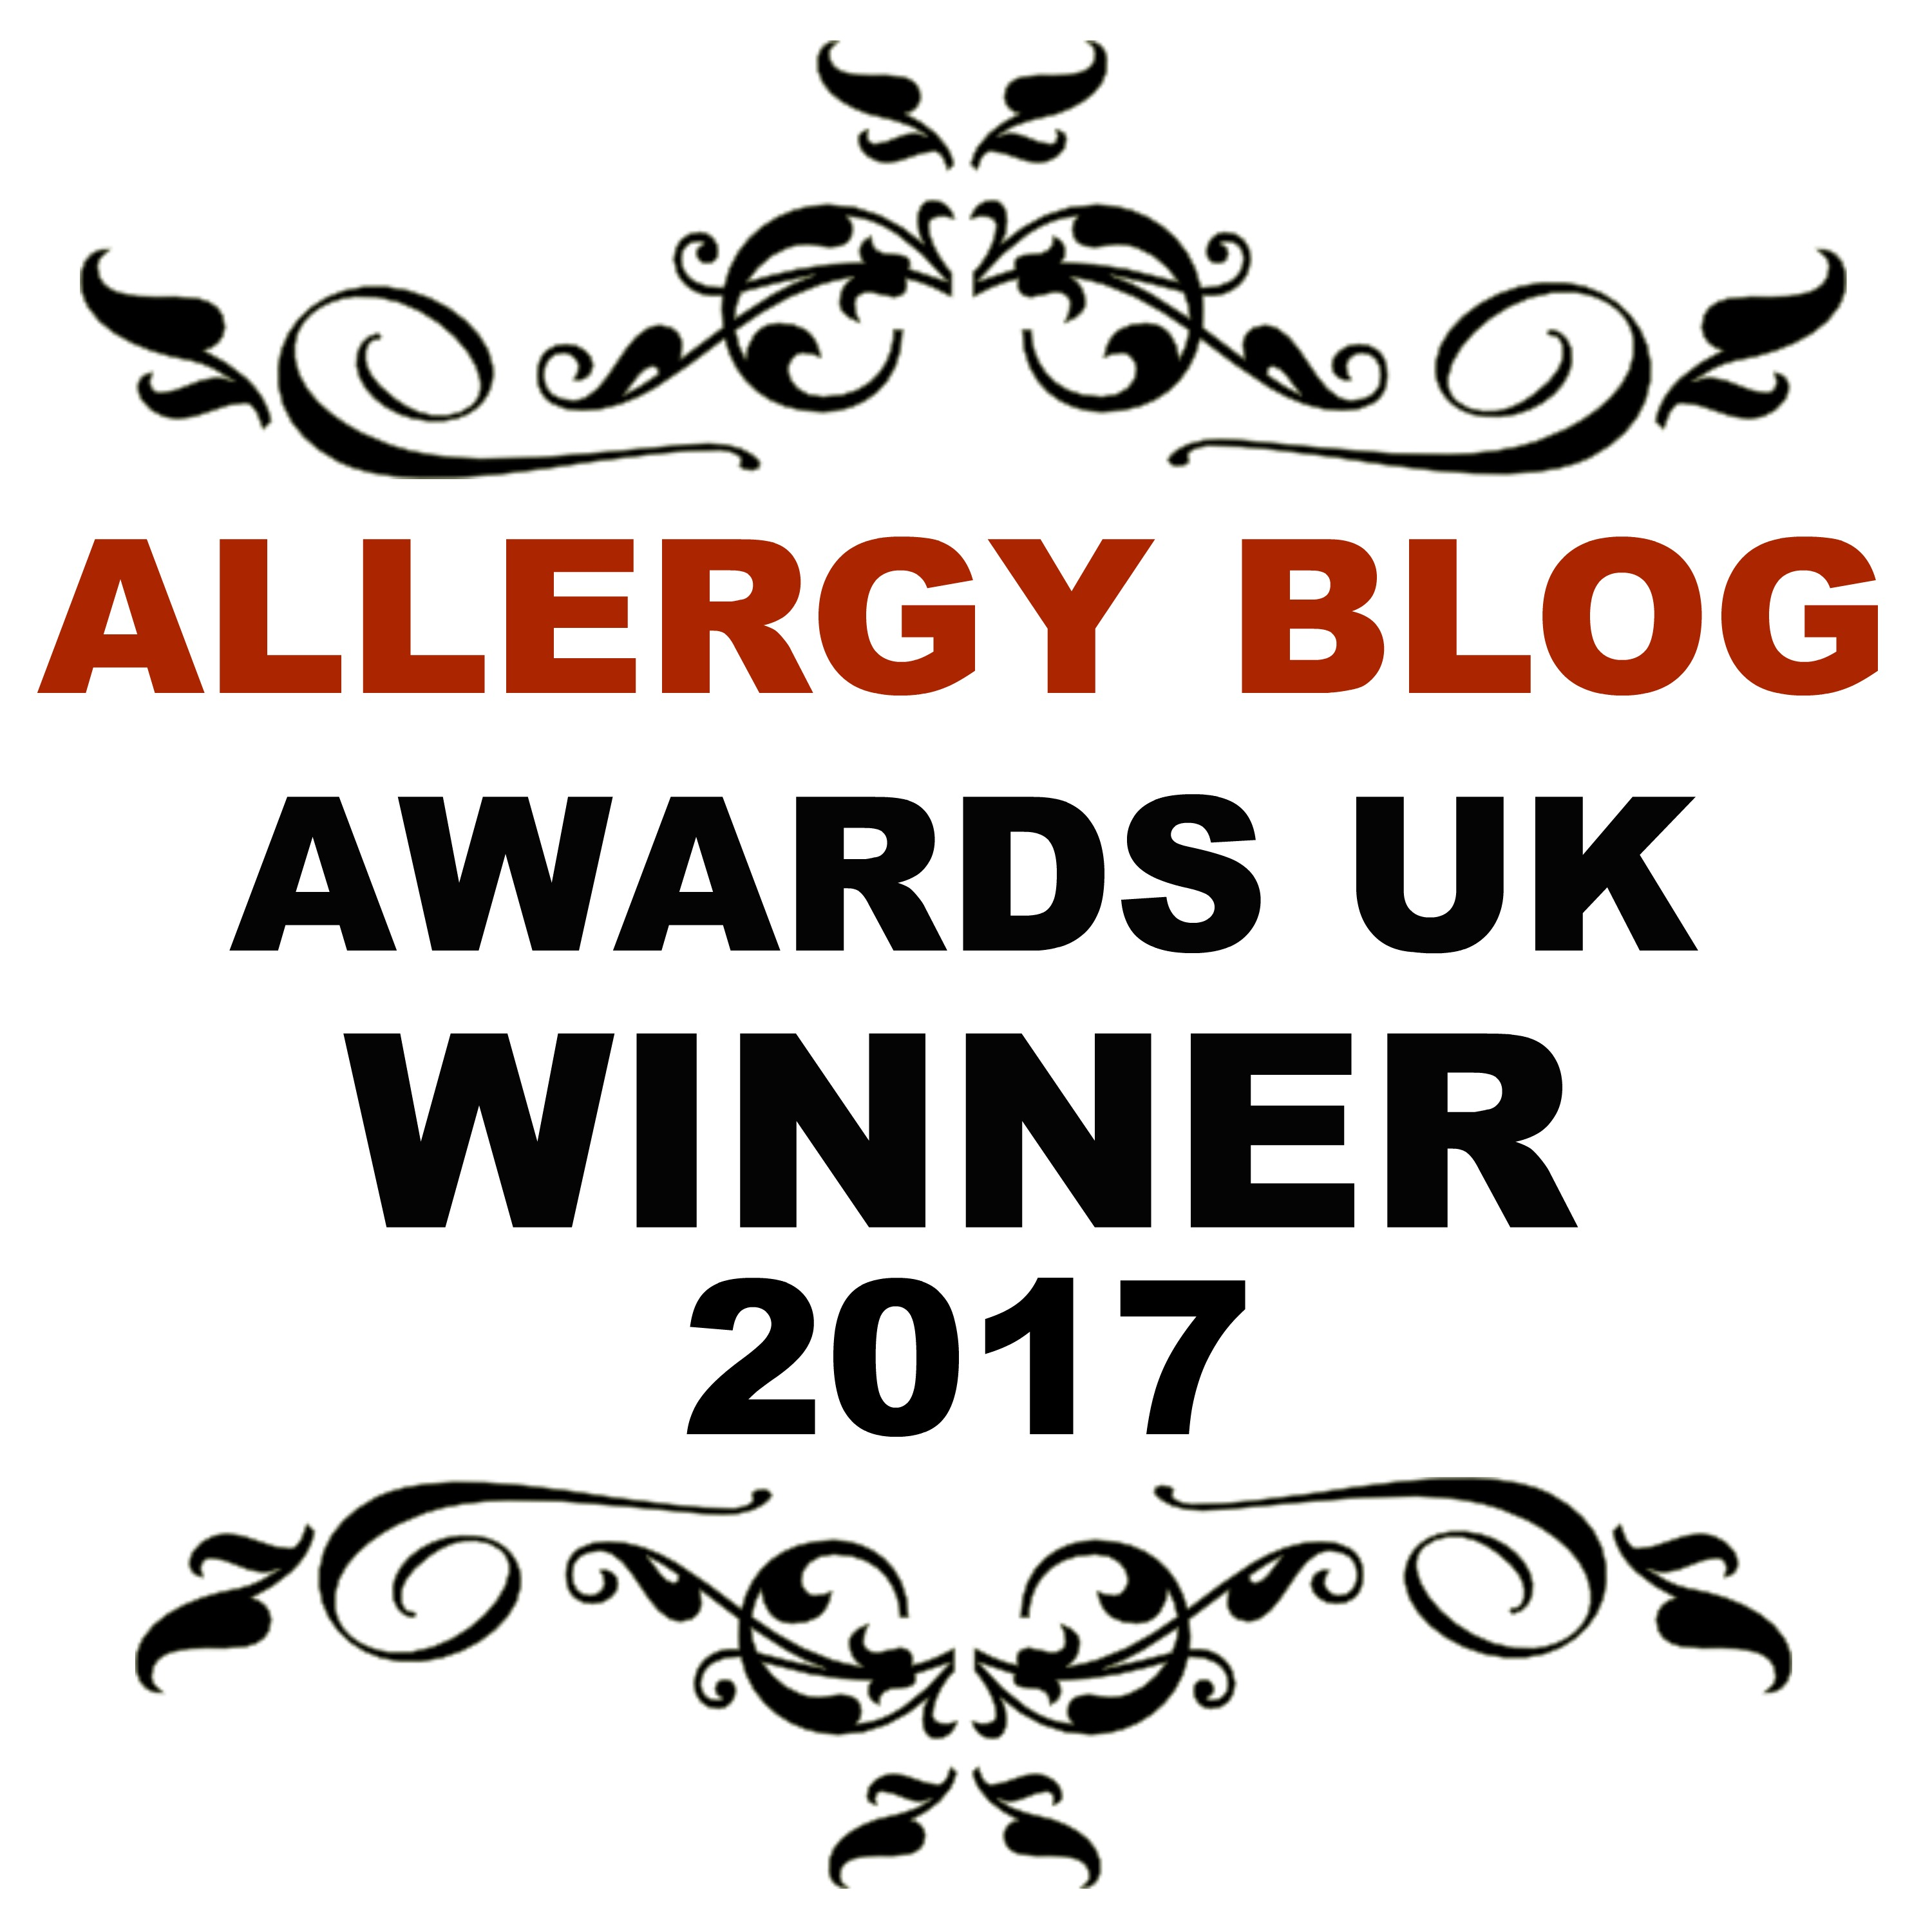 Allergy Blog Award Winner